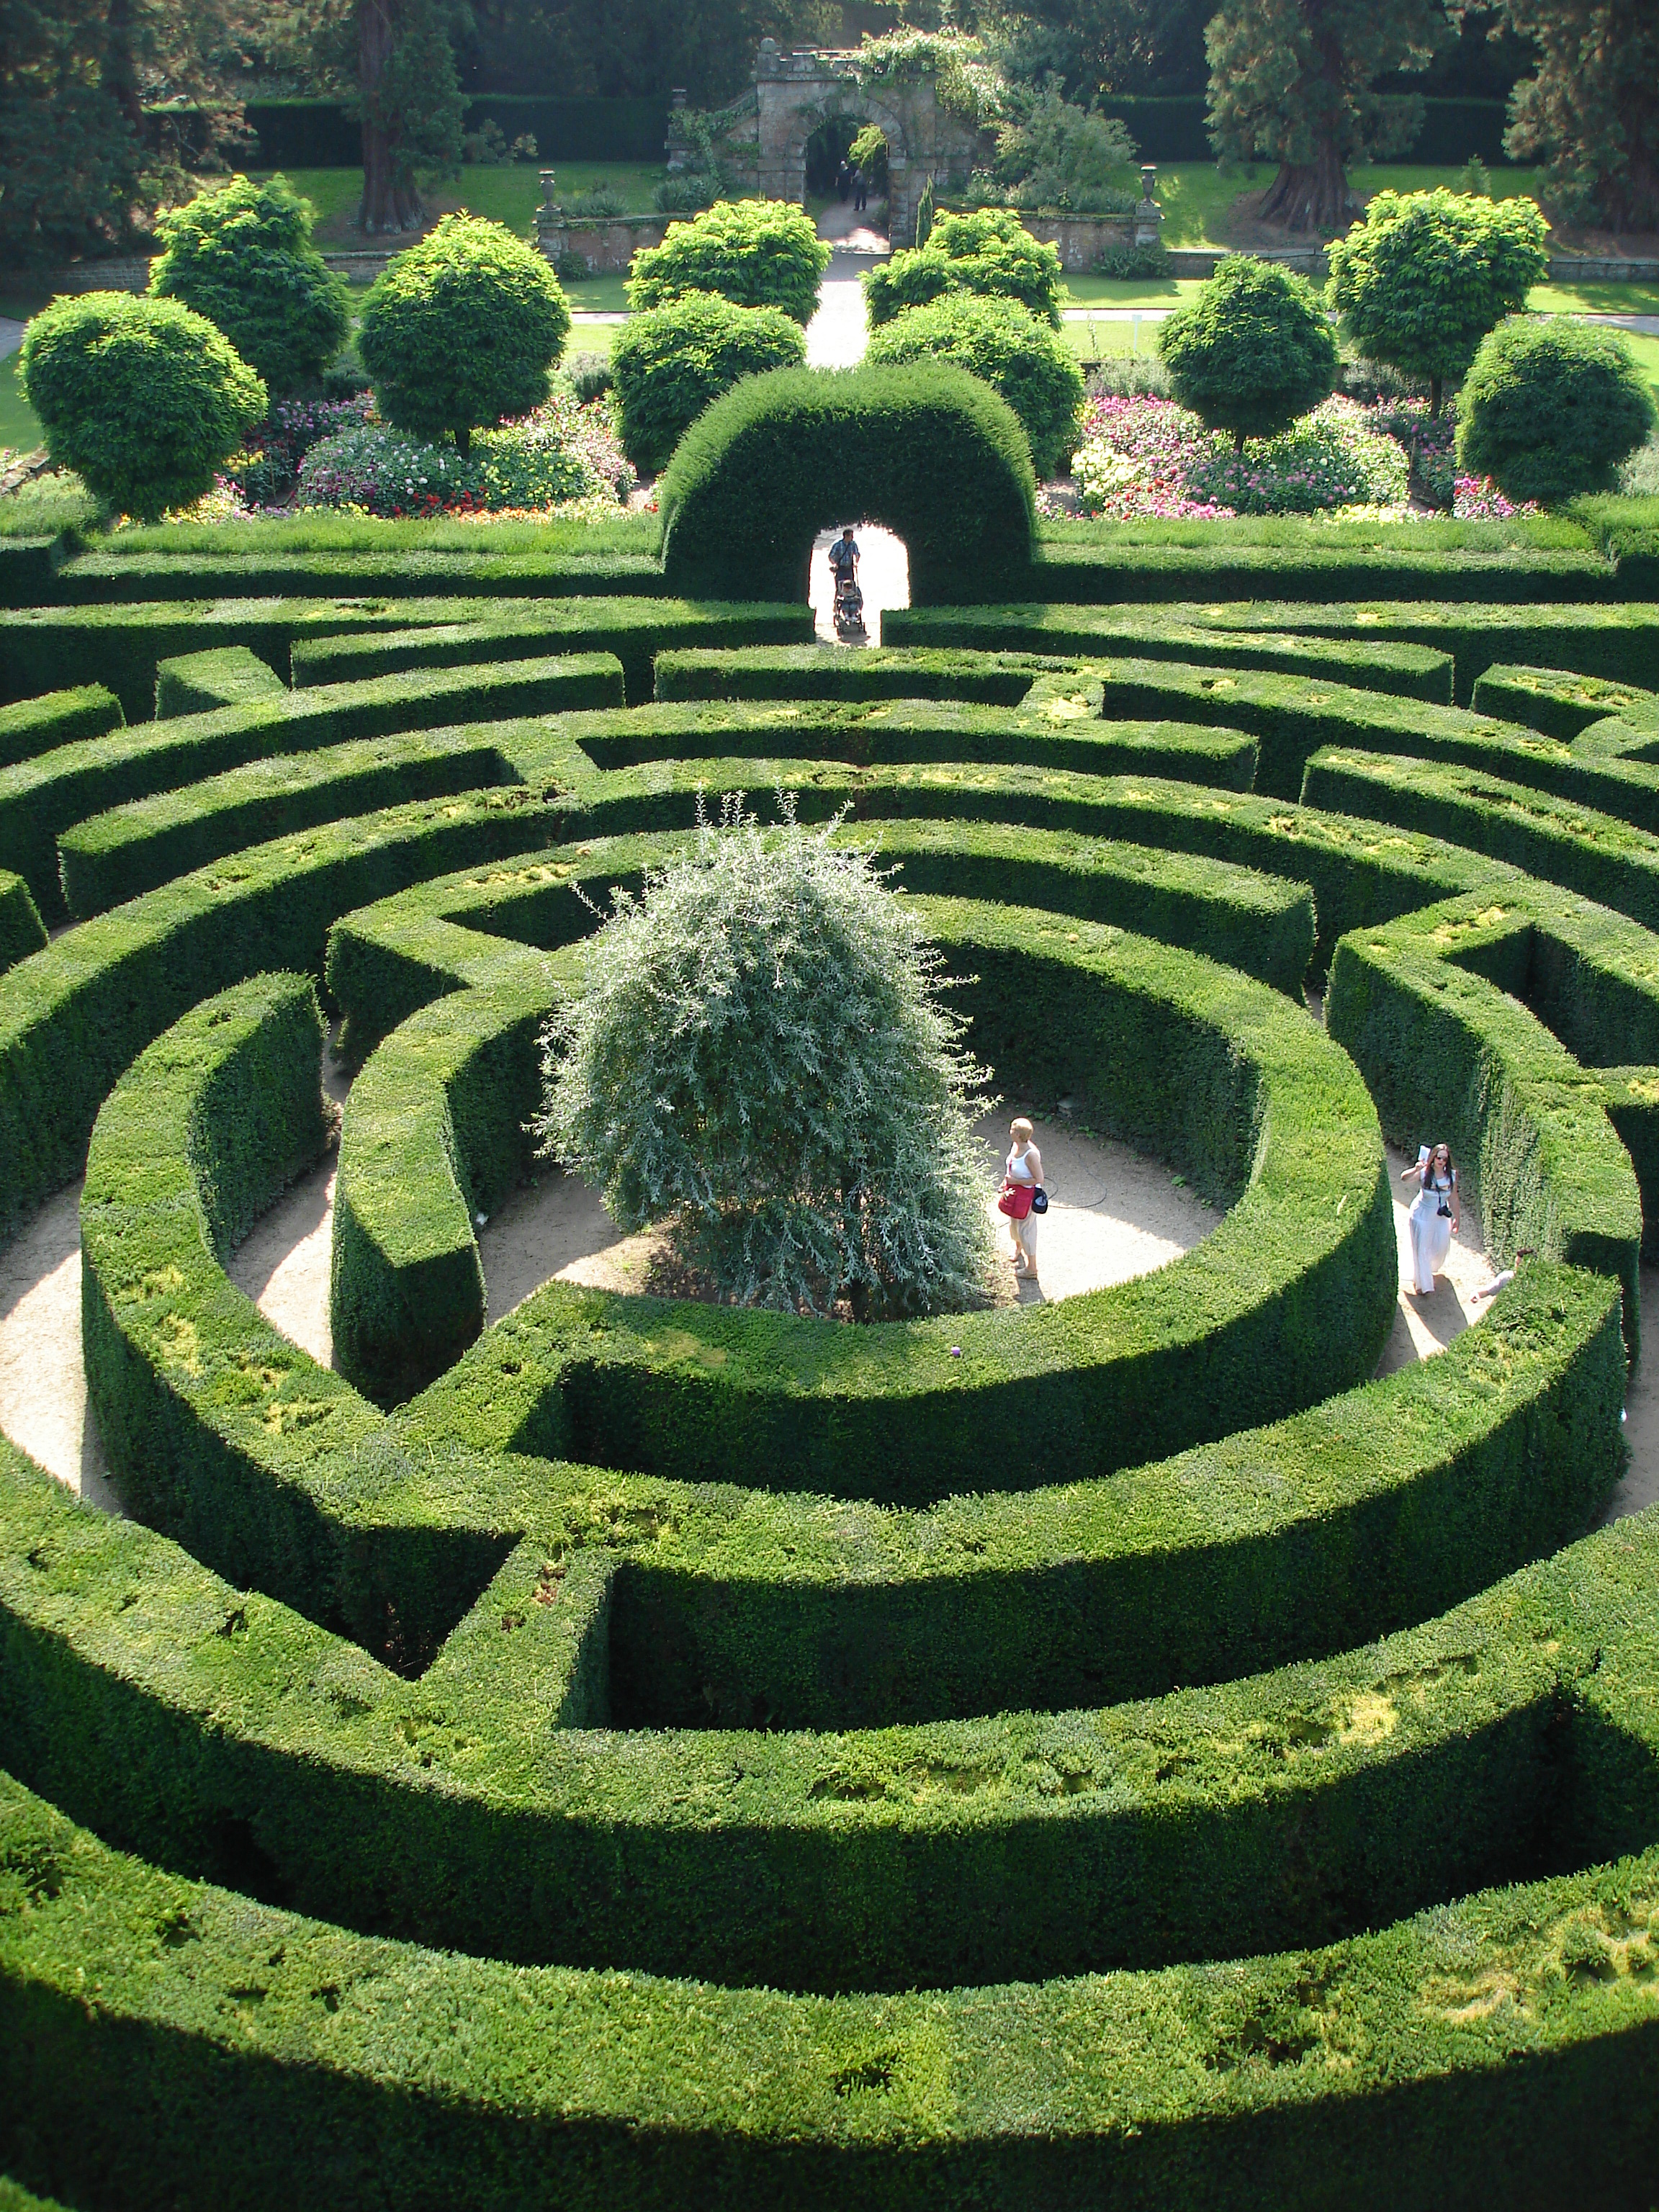 Chatsworth Maze photo courtesy of Chatsworth House Trust